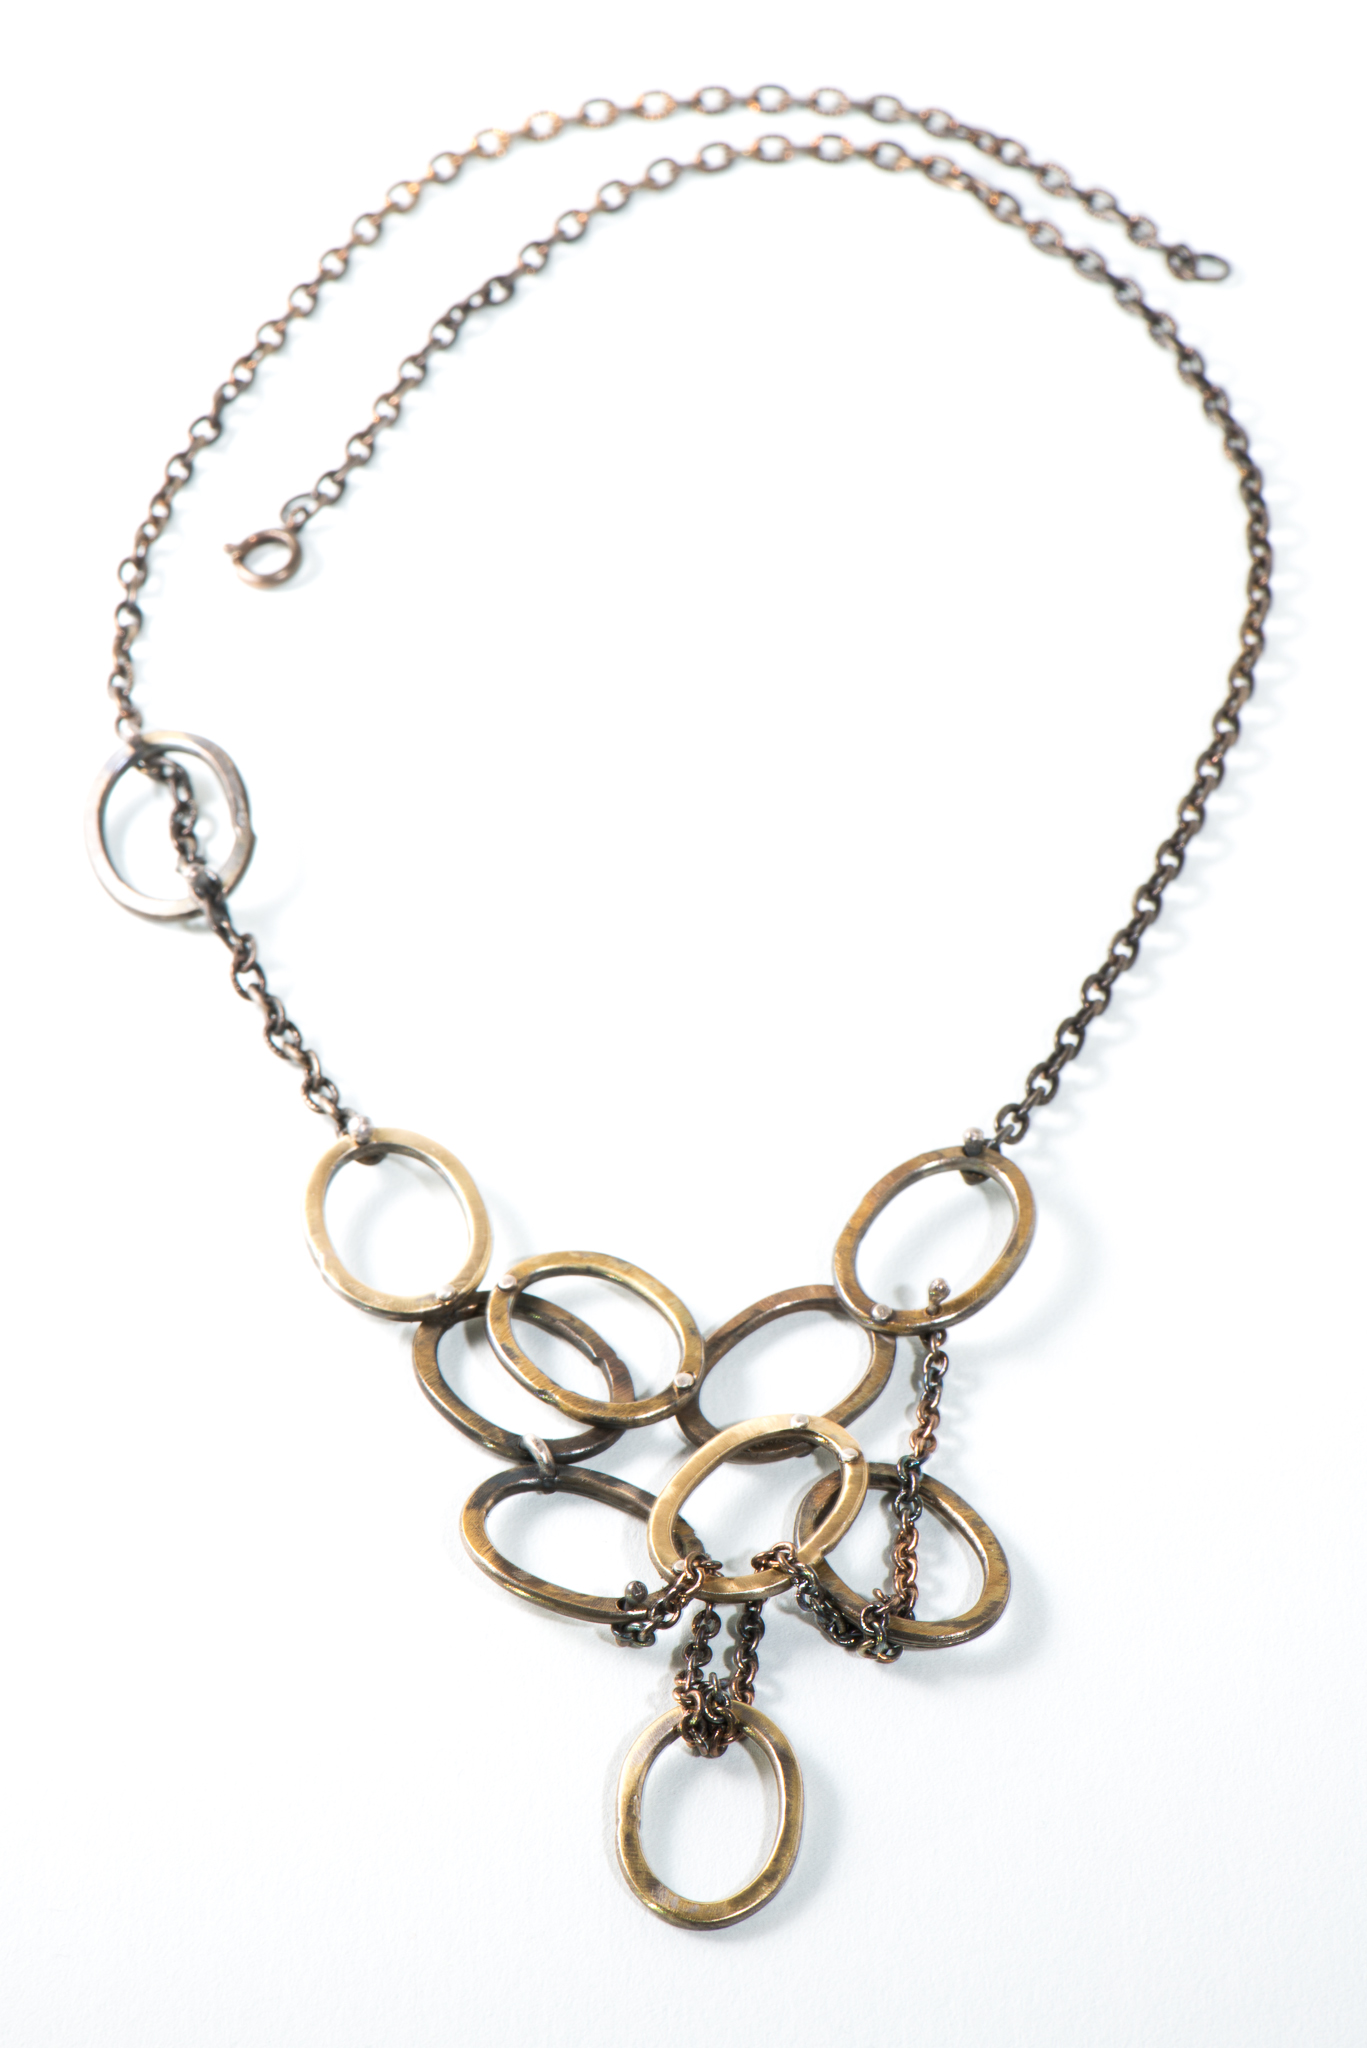 5-Annika Rundberg-Rivet Necklace.jpg